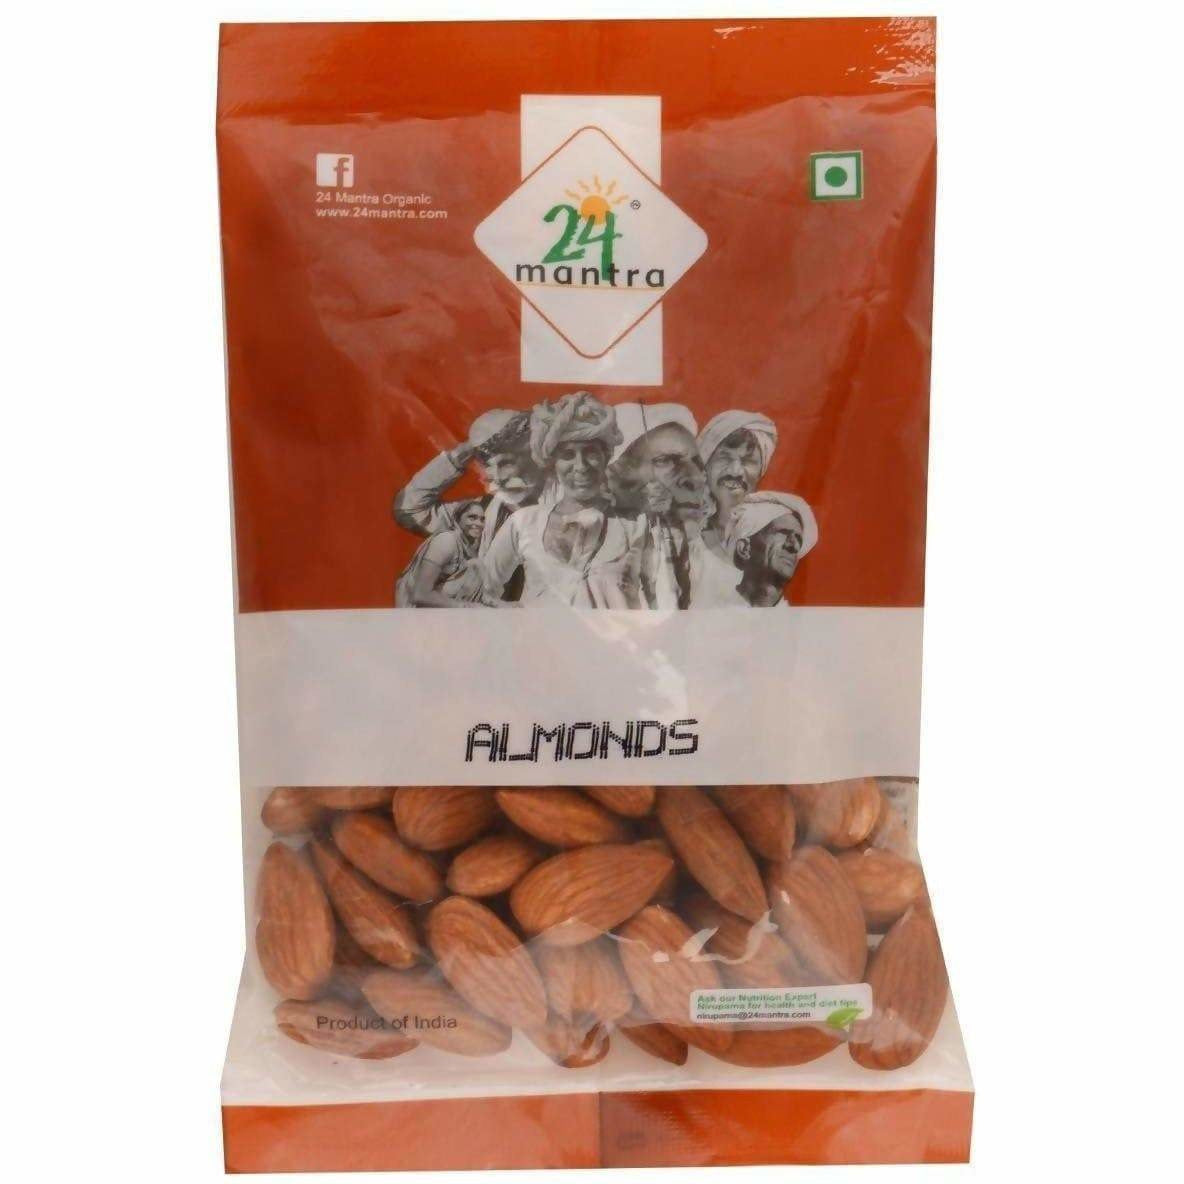 24 Mantra Organic Almonds